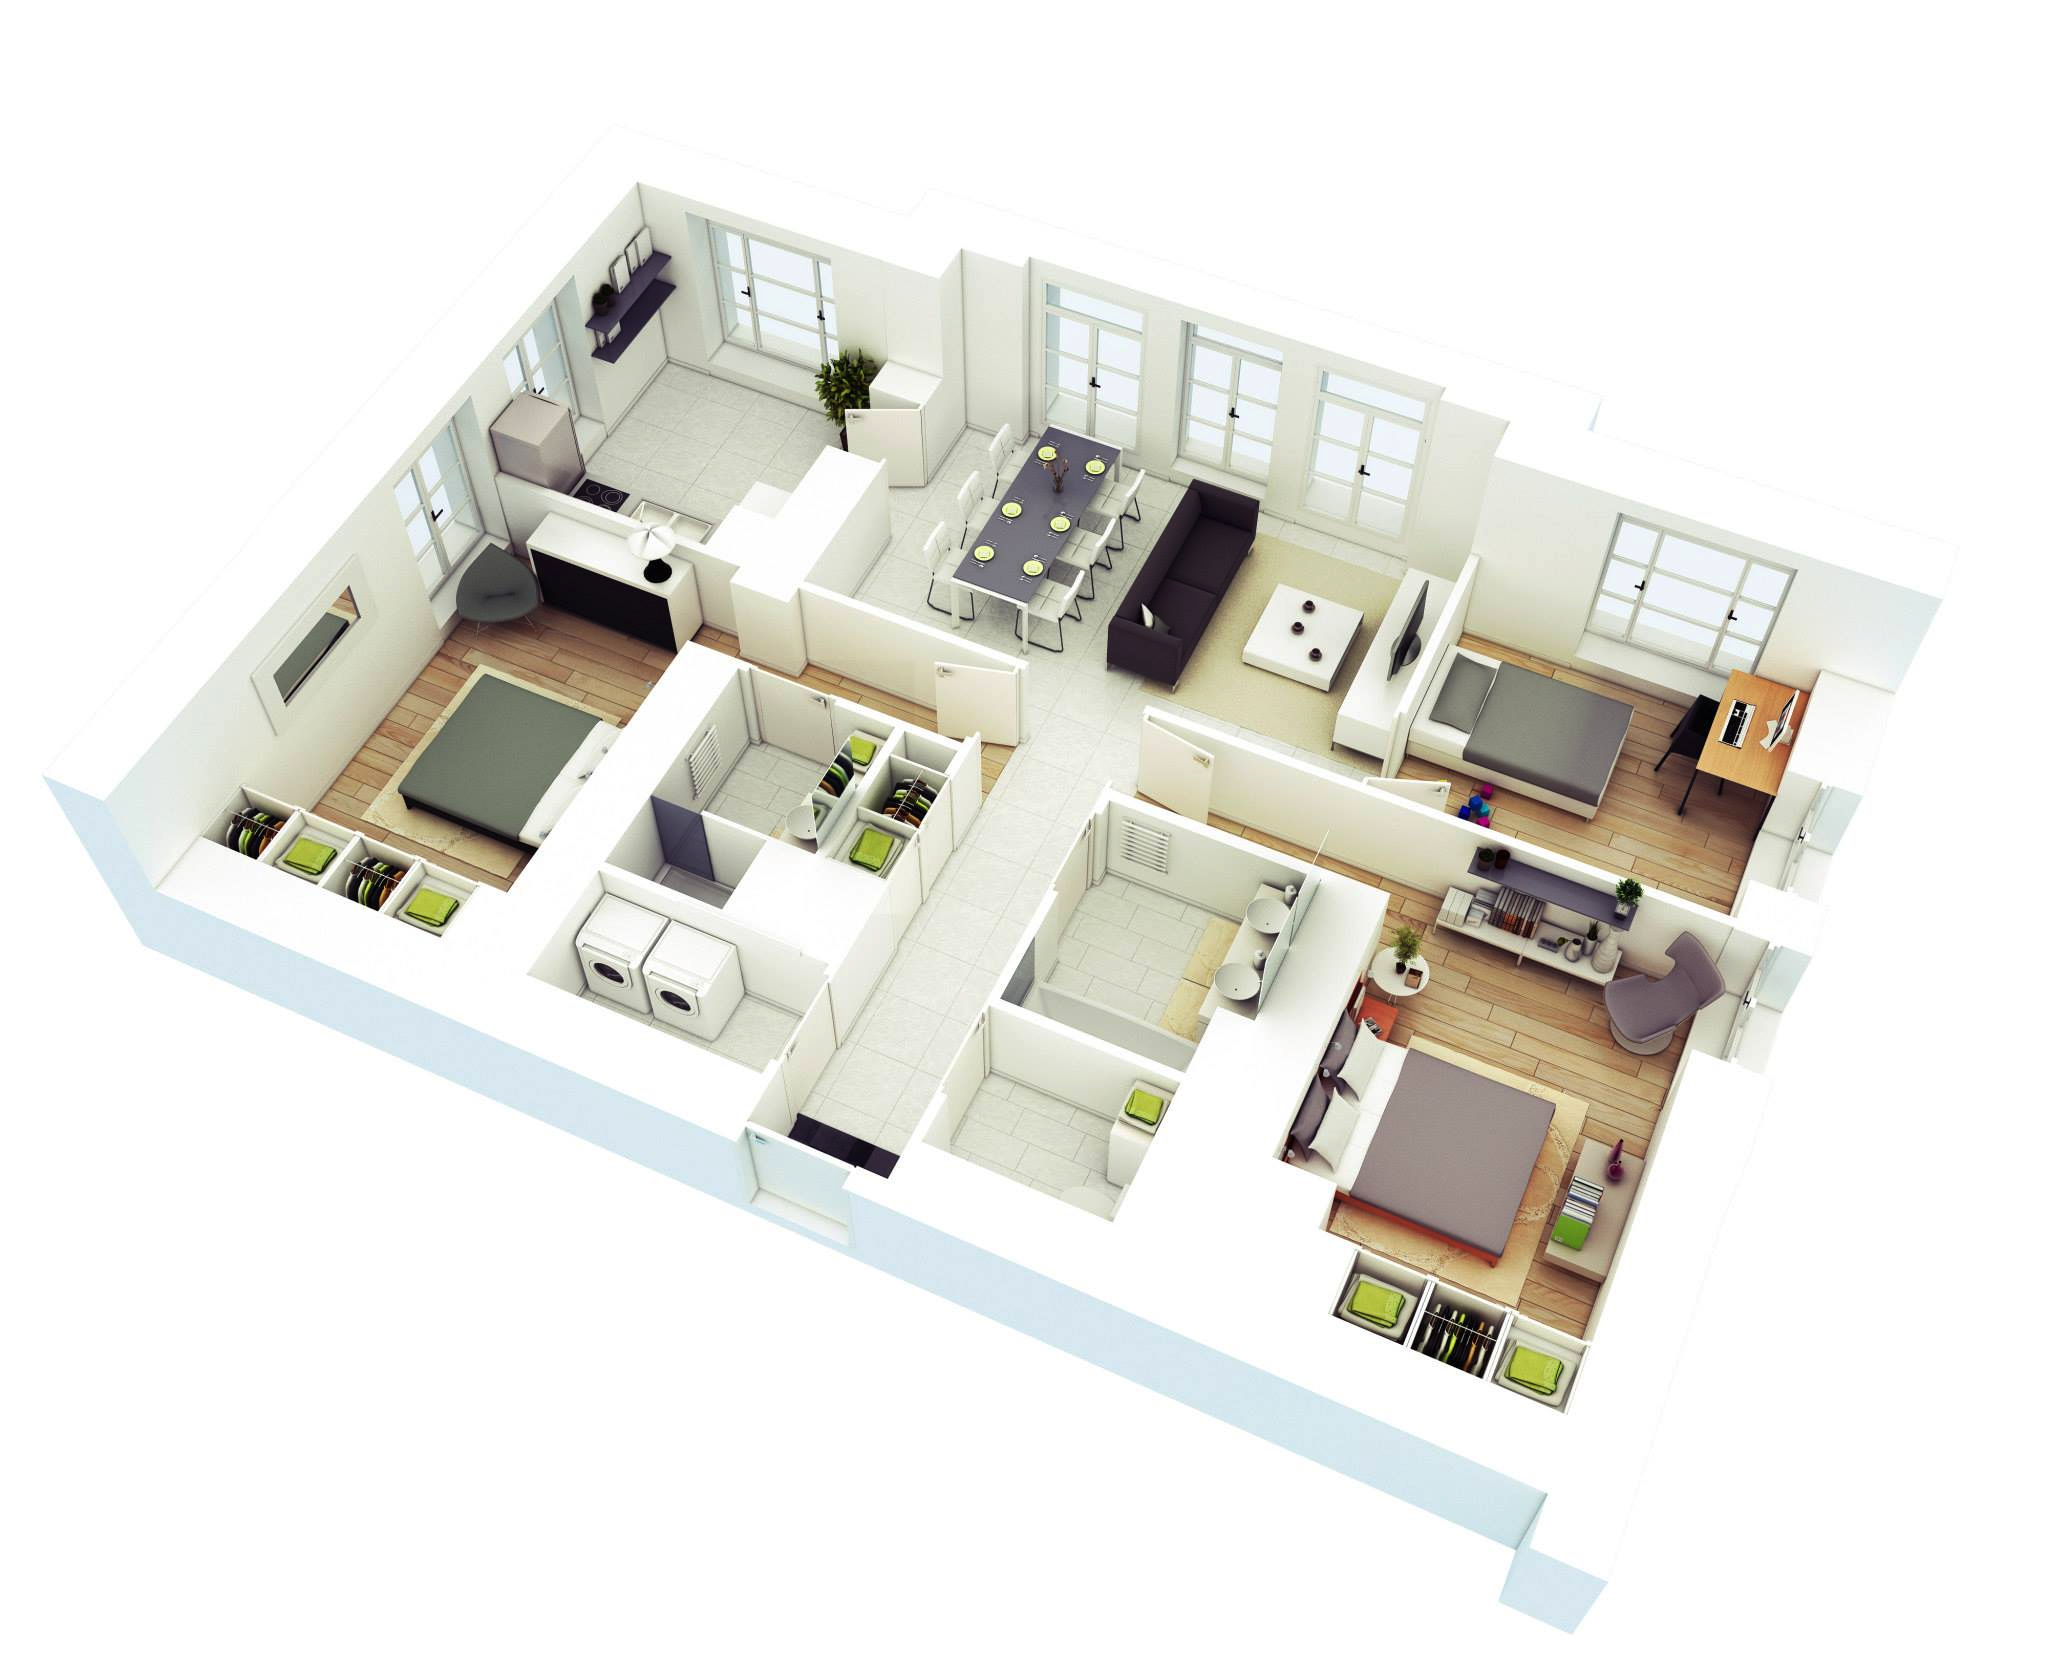 3 Bedroom Design Bedroom House Apartment Floor Plans Charming Simple Floor Plans